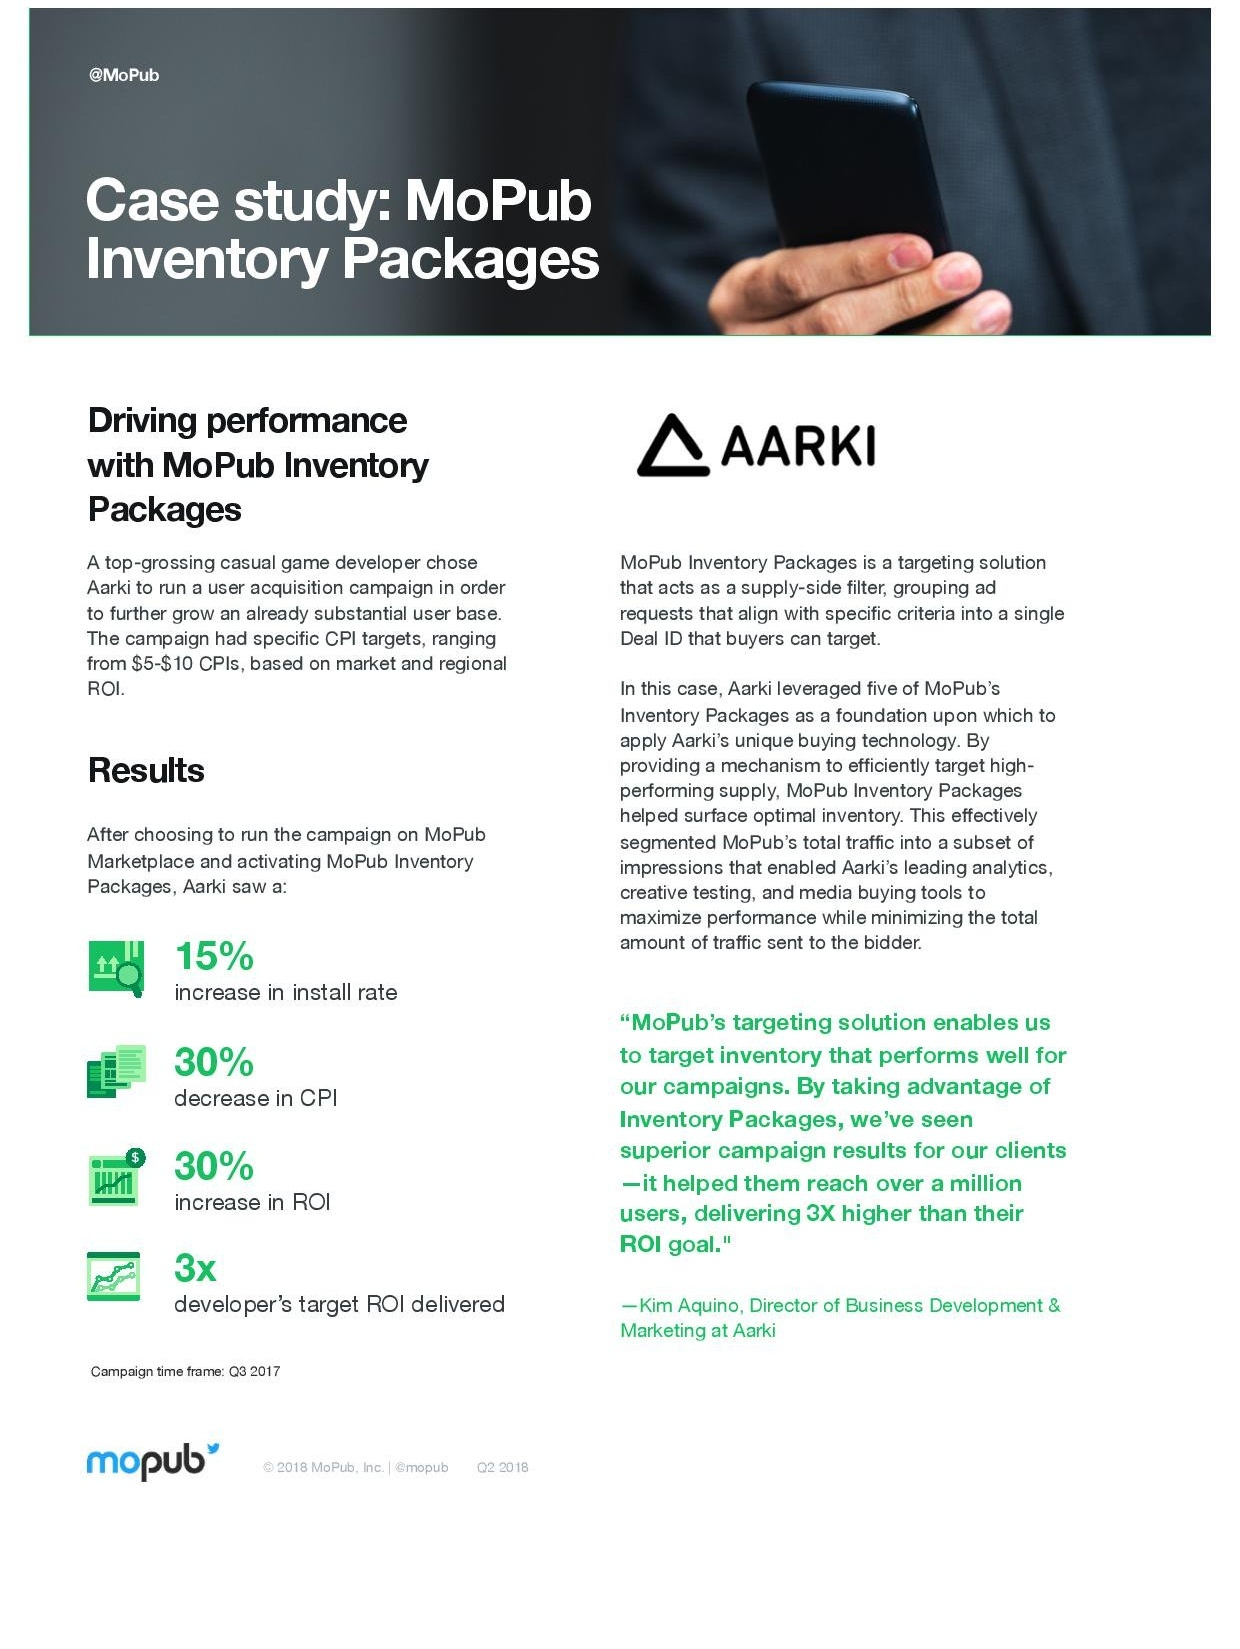 mopub_aarki_inventory_packages_case_study (1)-page-001-803026-edited